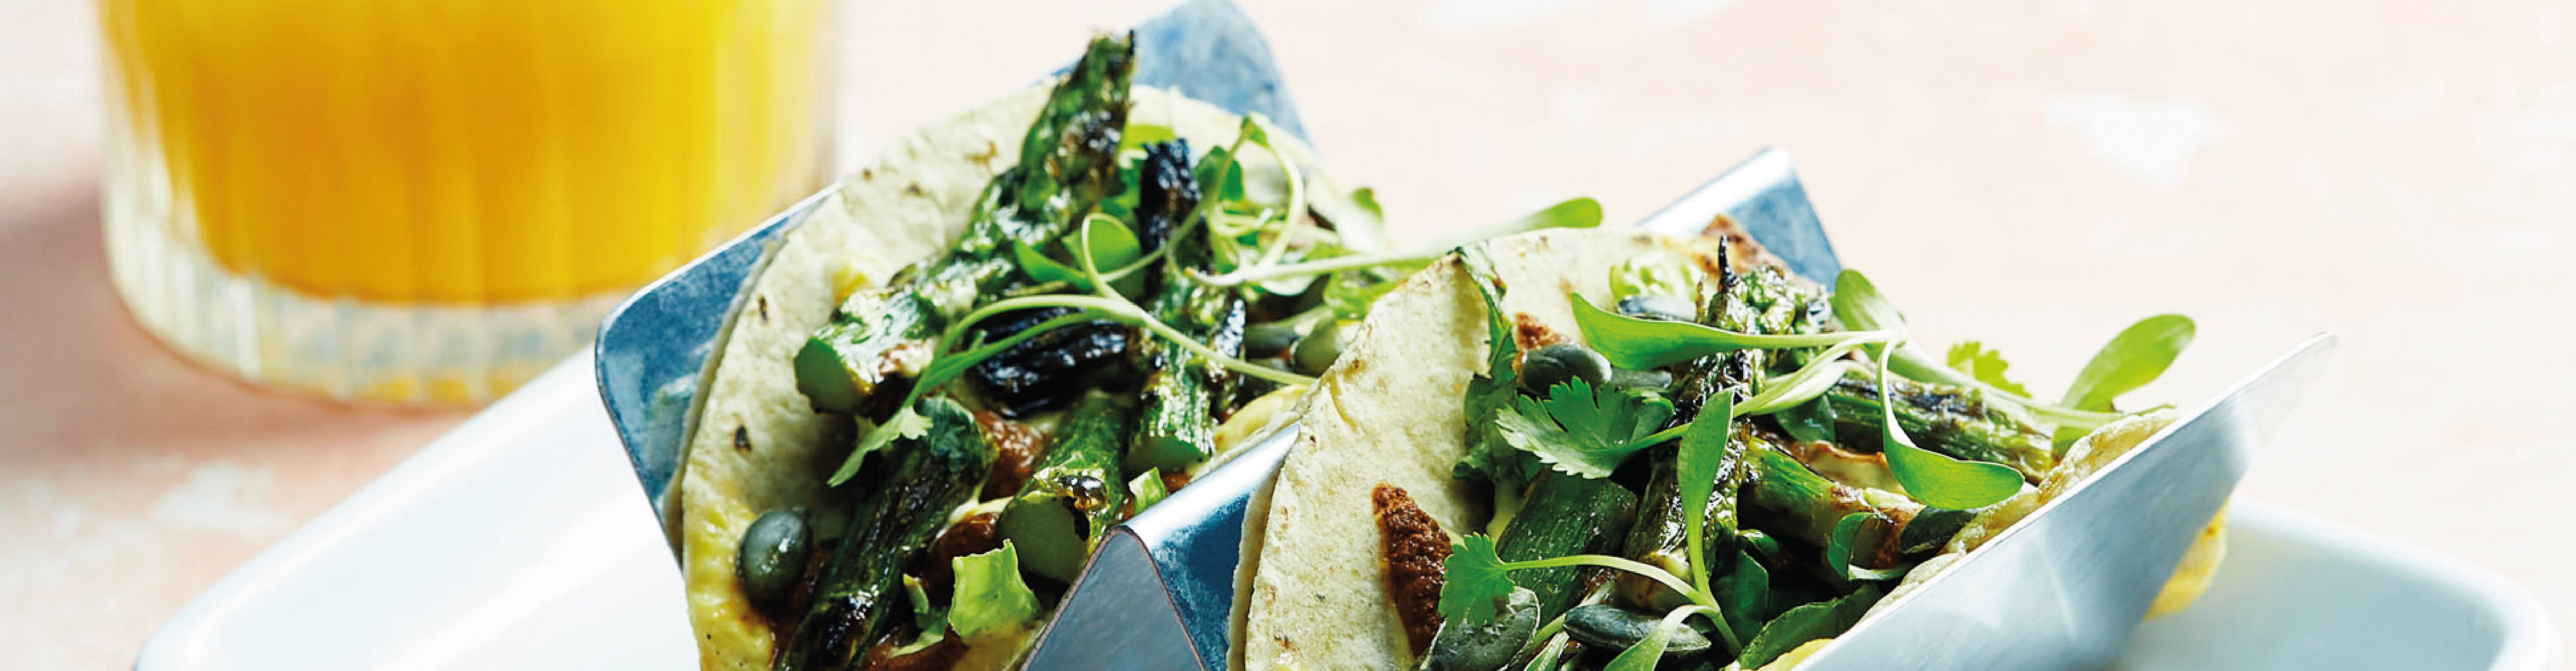 Two soft corn tortillas bursting with vibrant, green, seasonal, asparagus spears, displayed in a taco wave